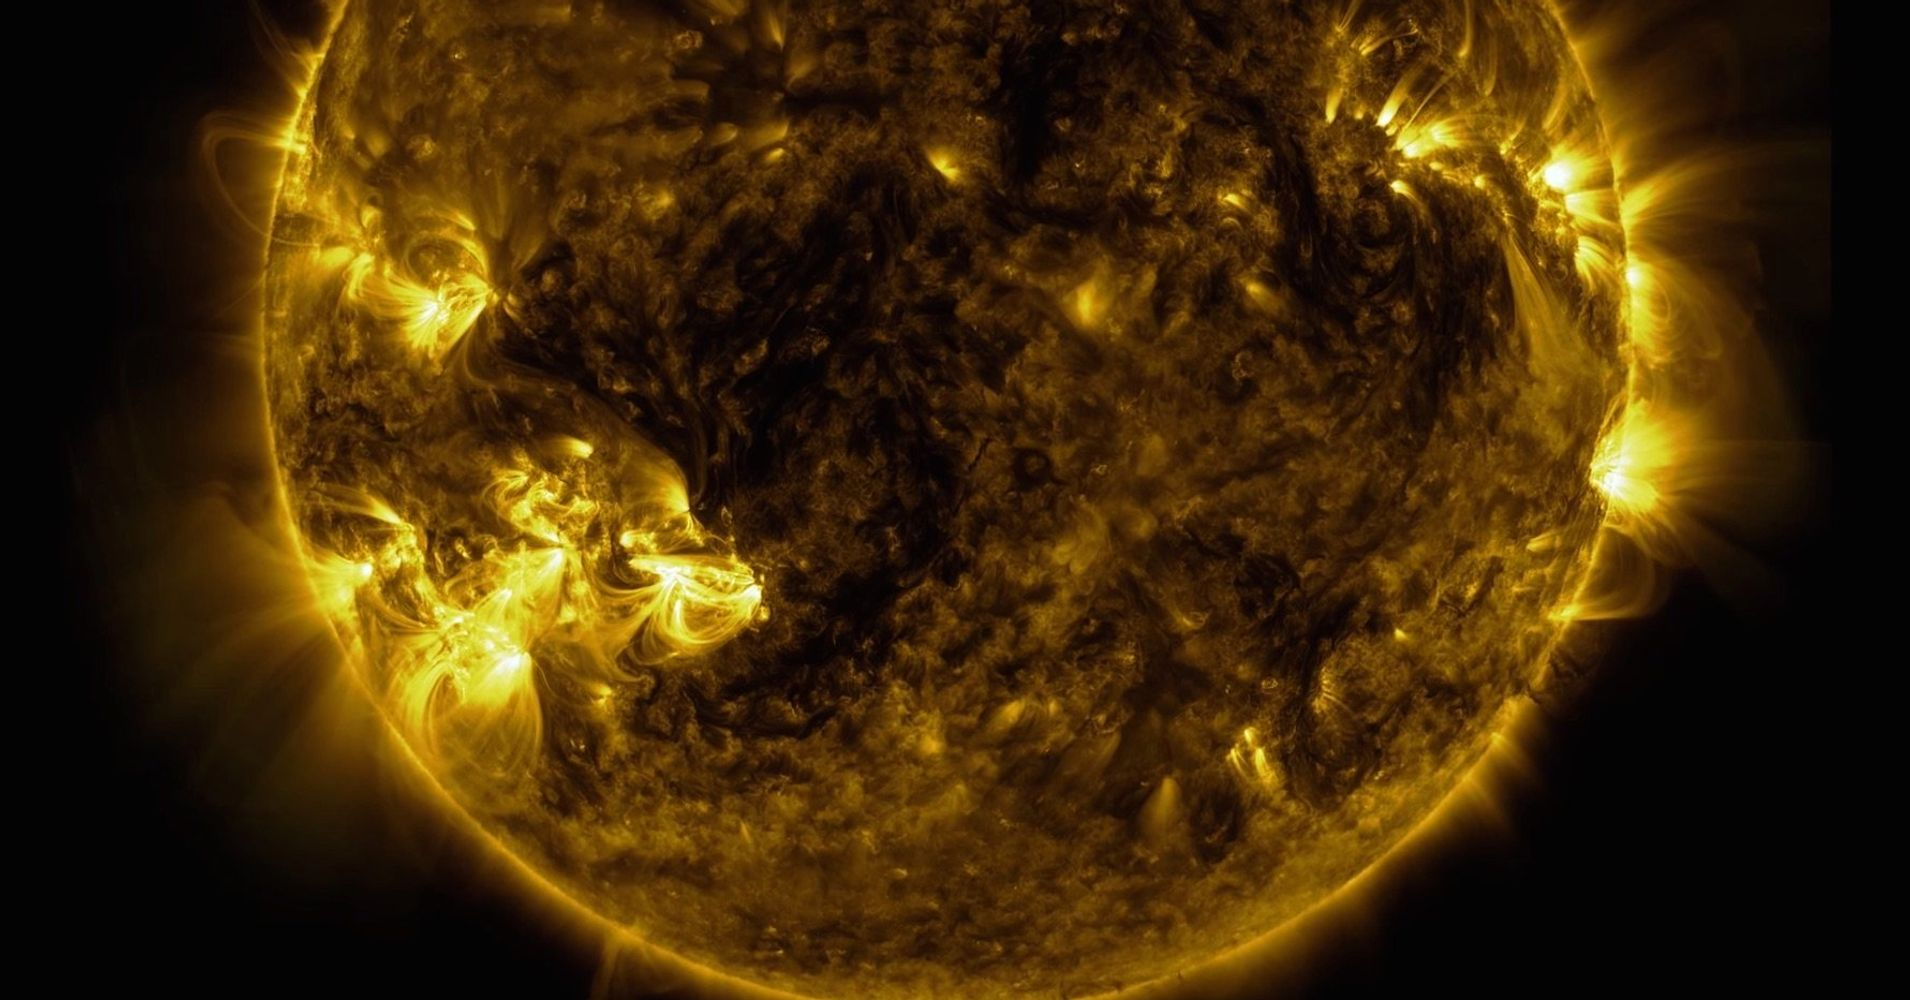 New NASA Video Shows The Sun In Stunning Ultra-High Definition